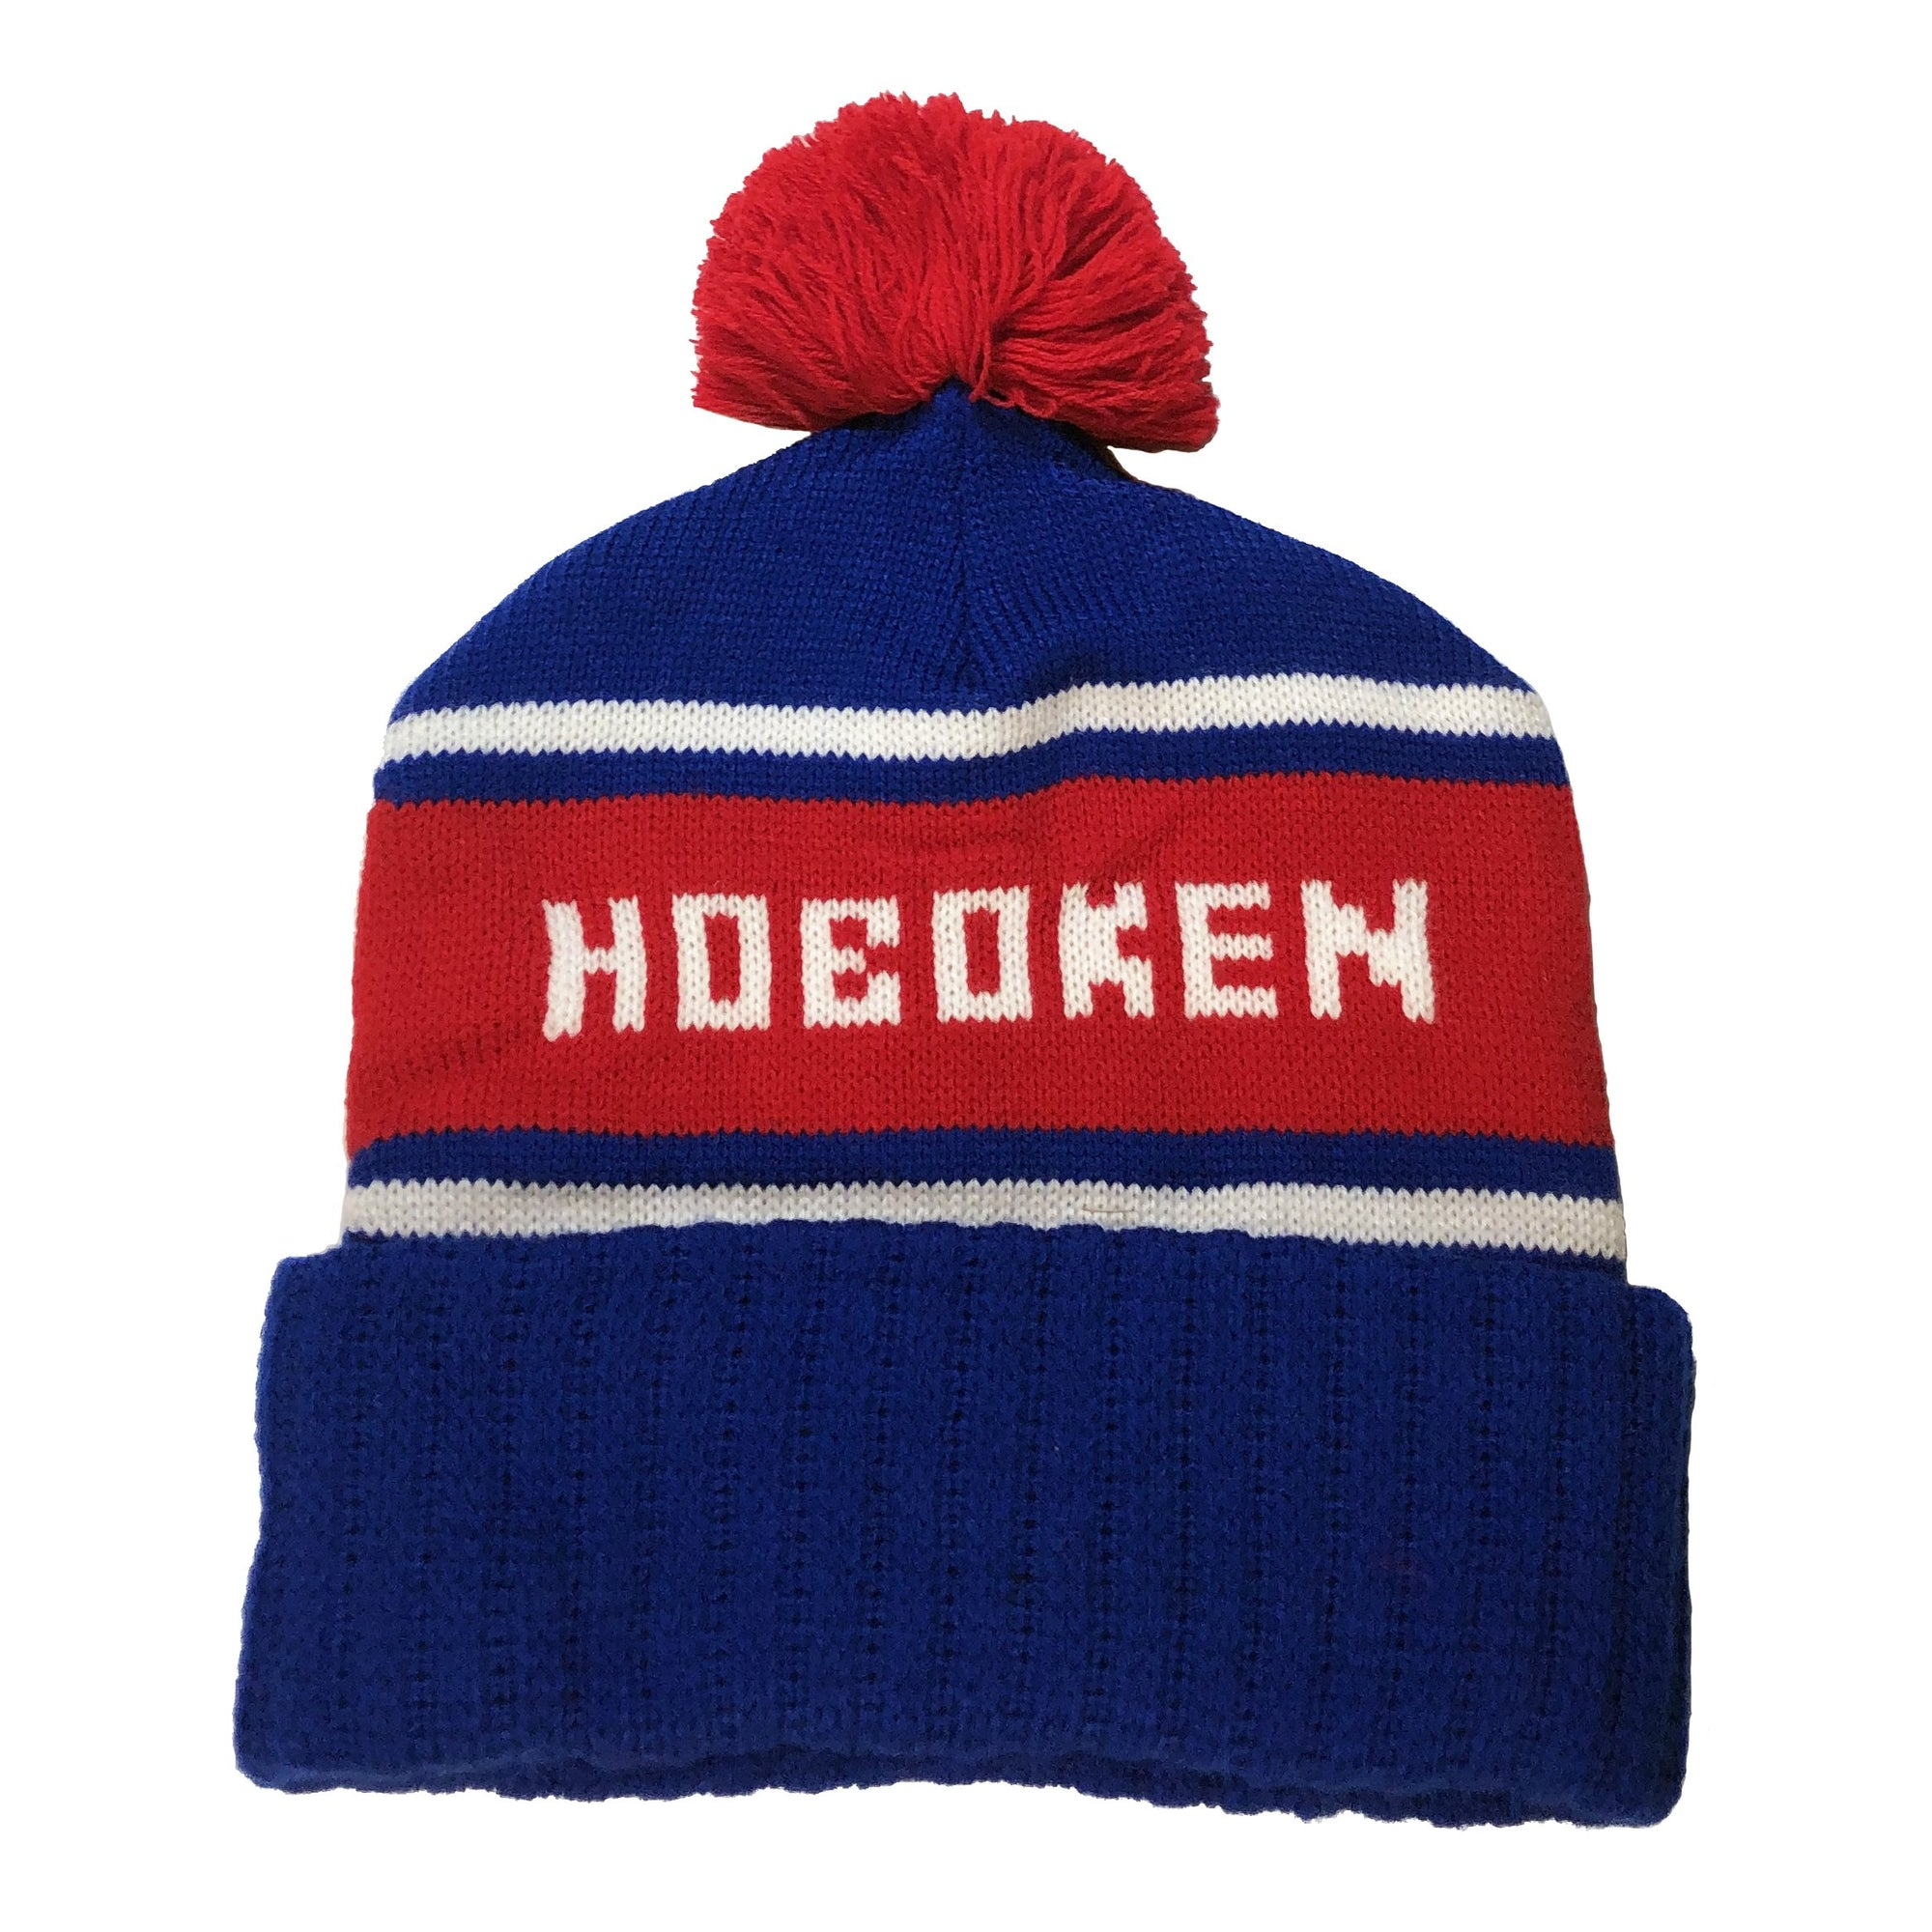 Vintage Inspired Hoboken Winter Pom Pom Hat | Cool Retro Knit Square Mile Beanie | Solid Threads